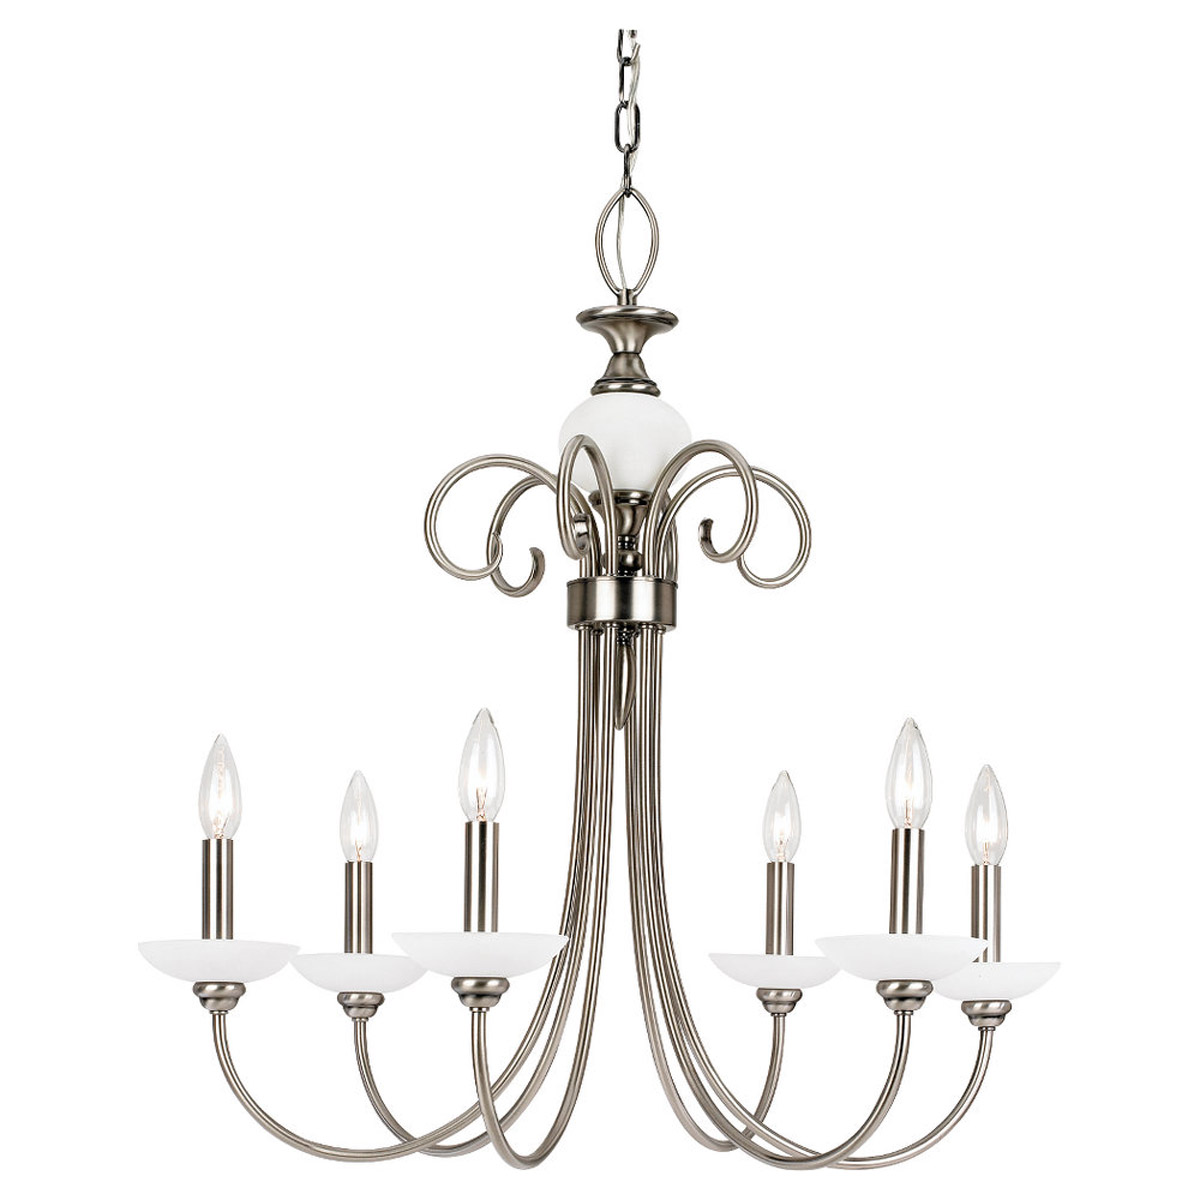 Sea Gull Lighting Montclaire 6 Light Chandelier in Antique Brushed Nickel 31107-965